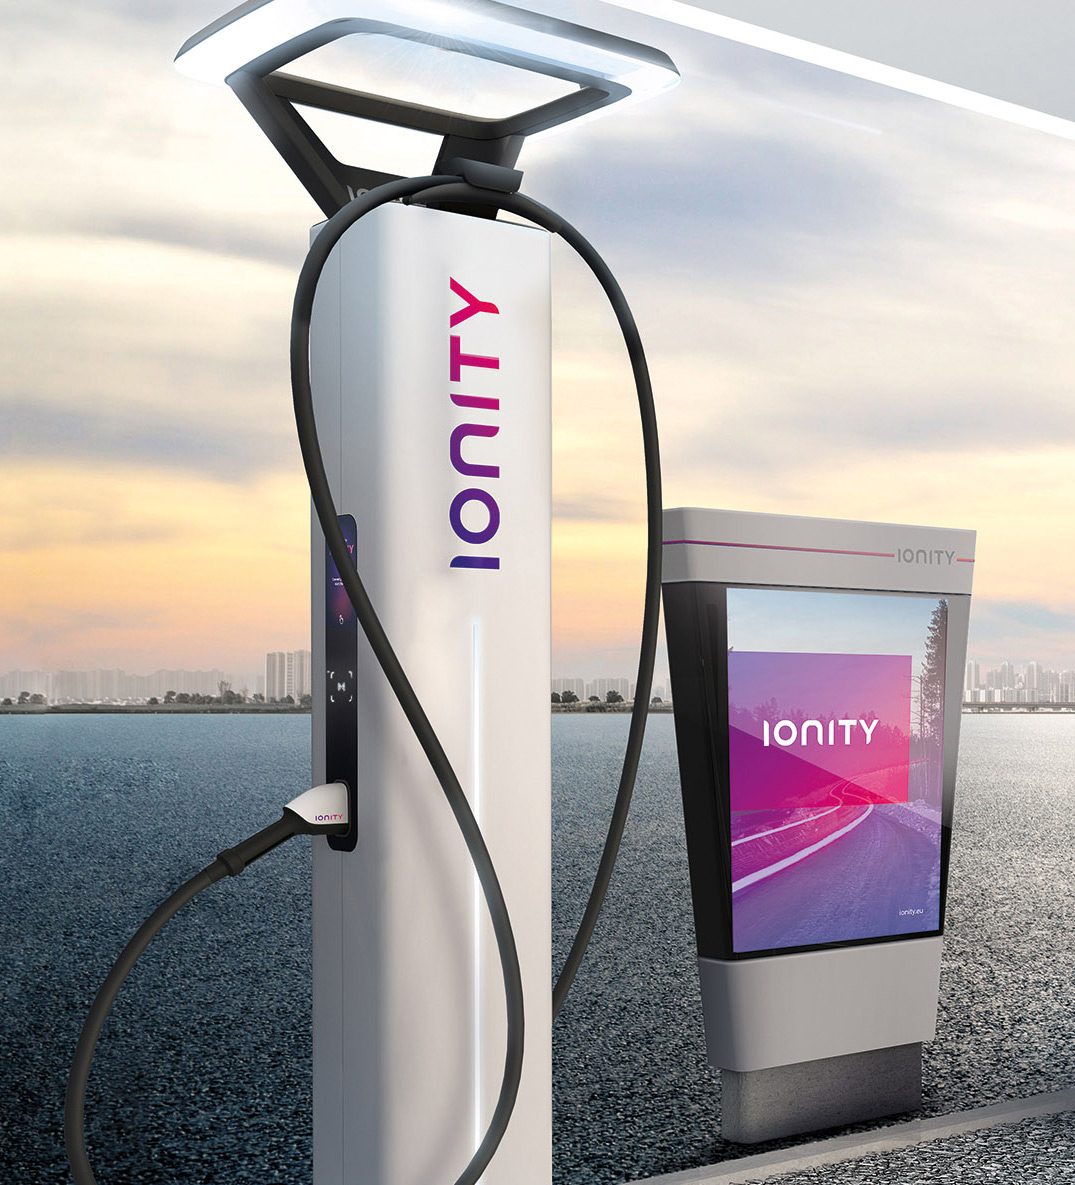 ionity electric vehicle charger